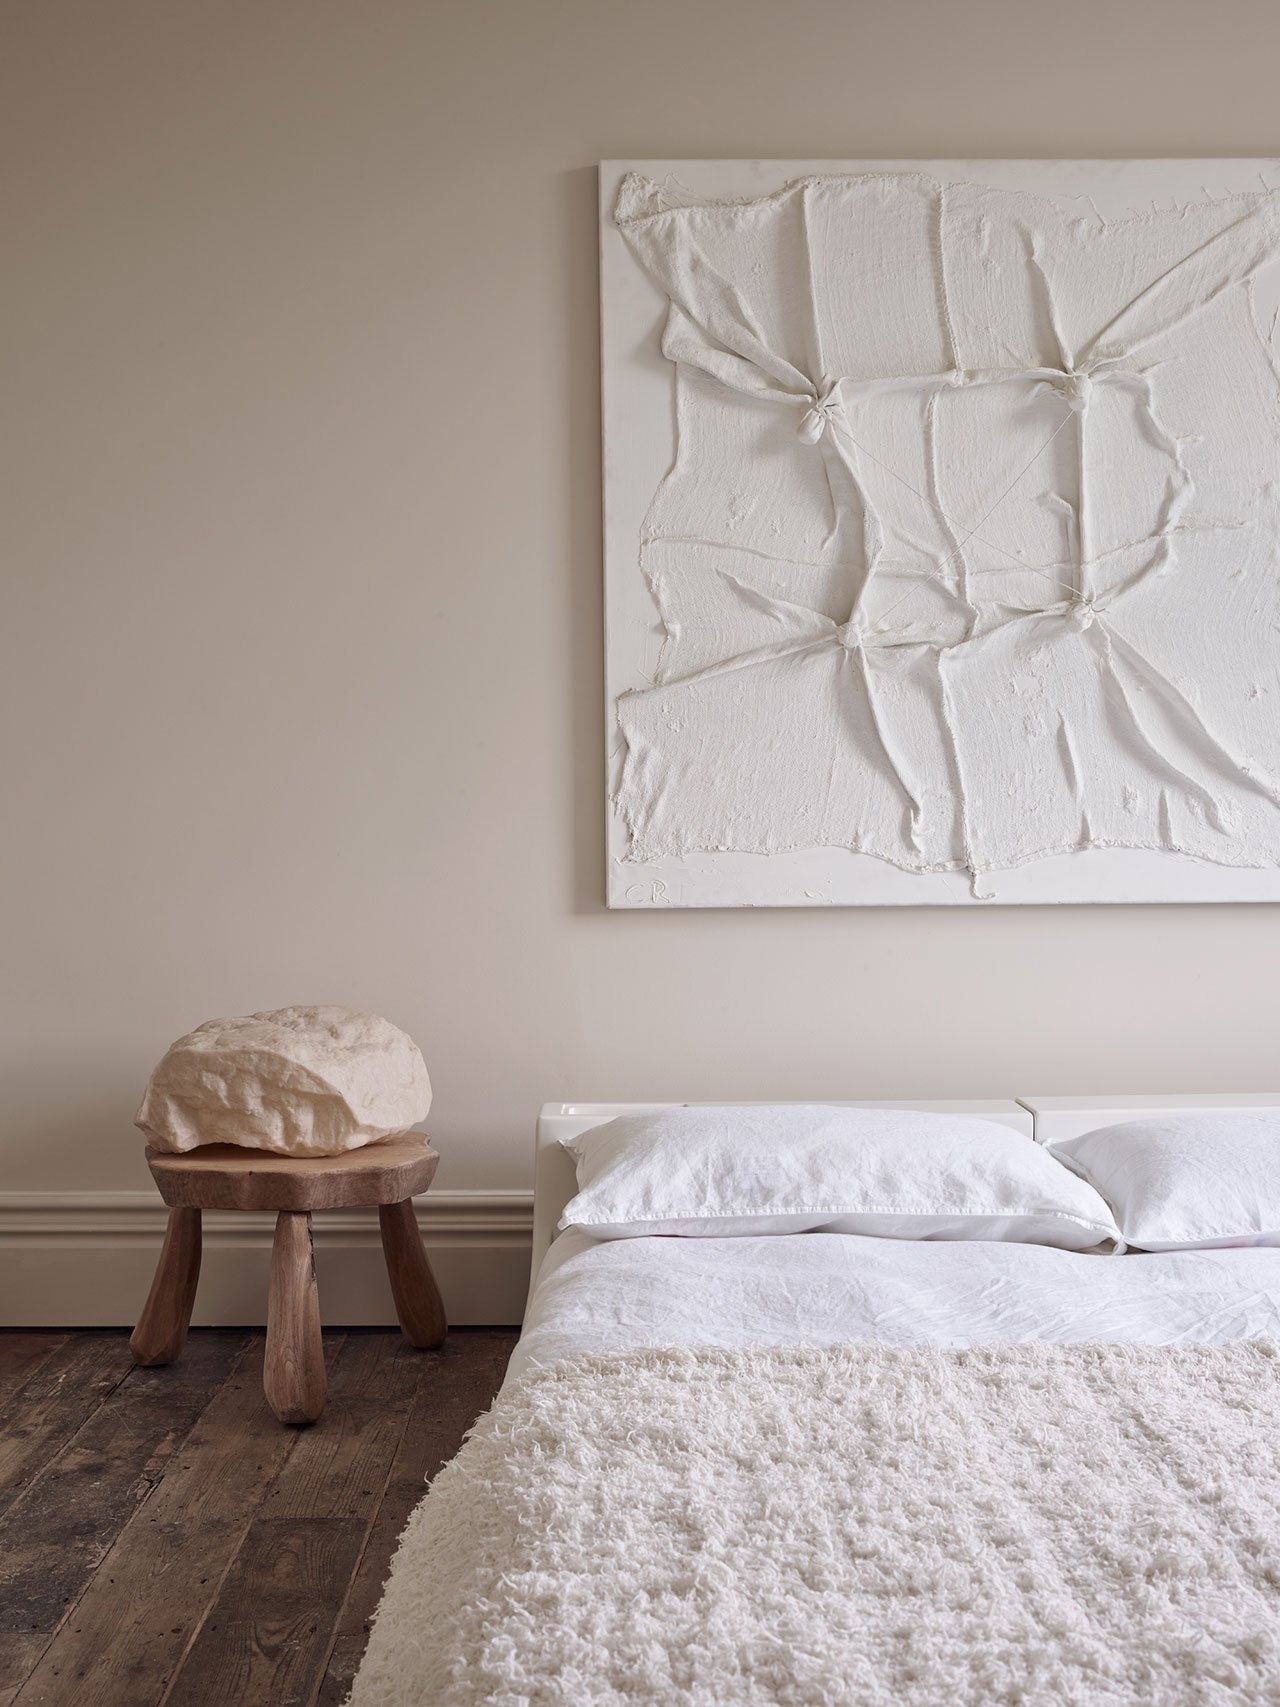 Another bedroom shows off a textural artwork and a comfy bed